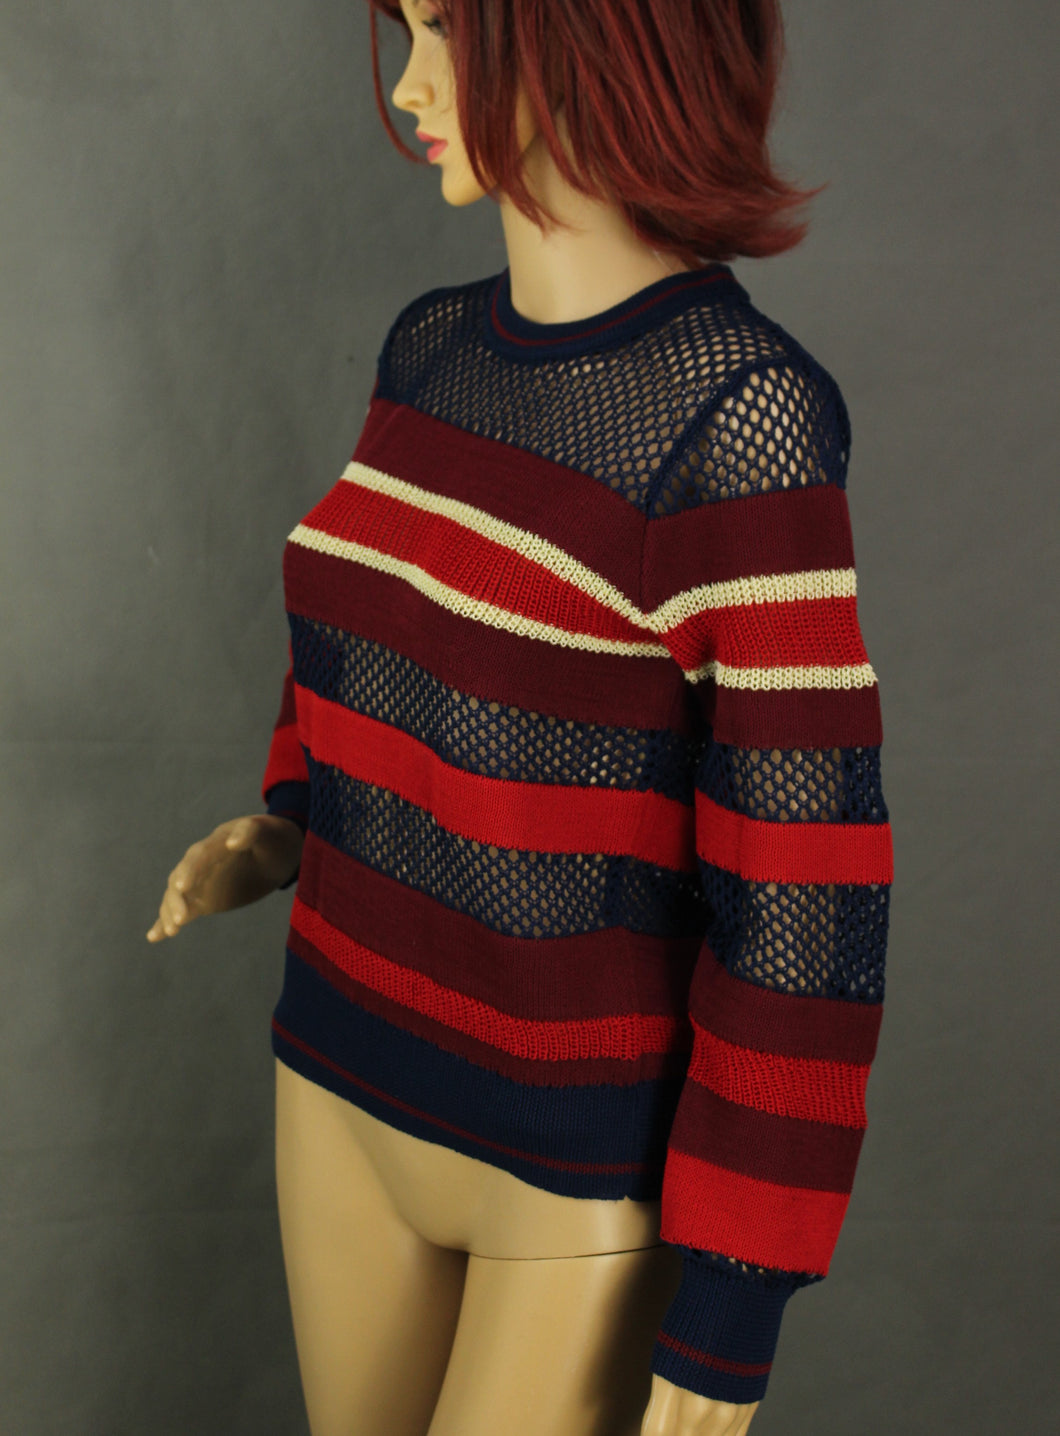 ISABEL MARANT ÉTOILE Contrast Knit Navy & Red Striped JUMPER Size FR 36 - UK 8